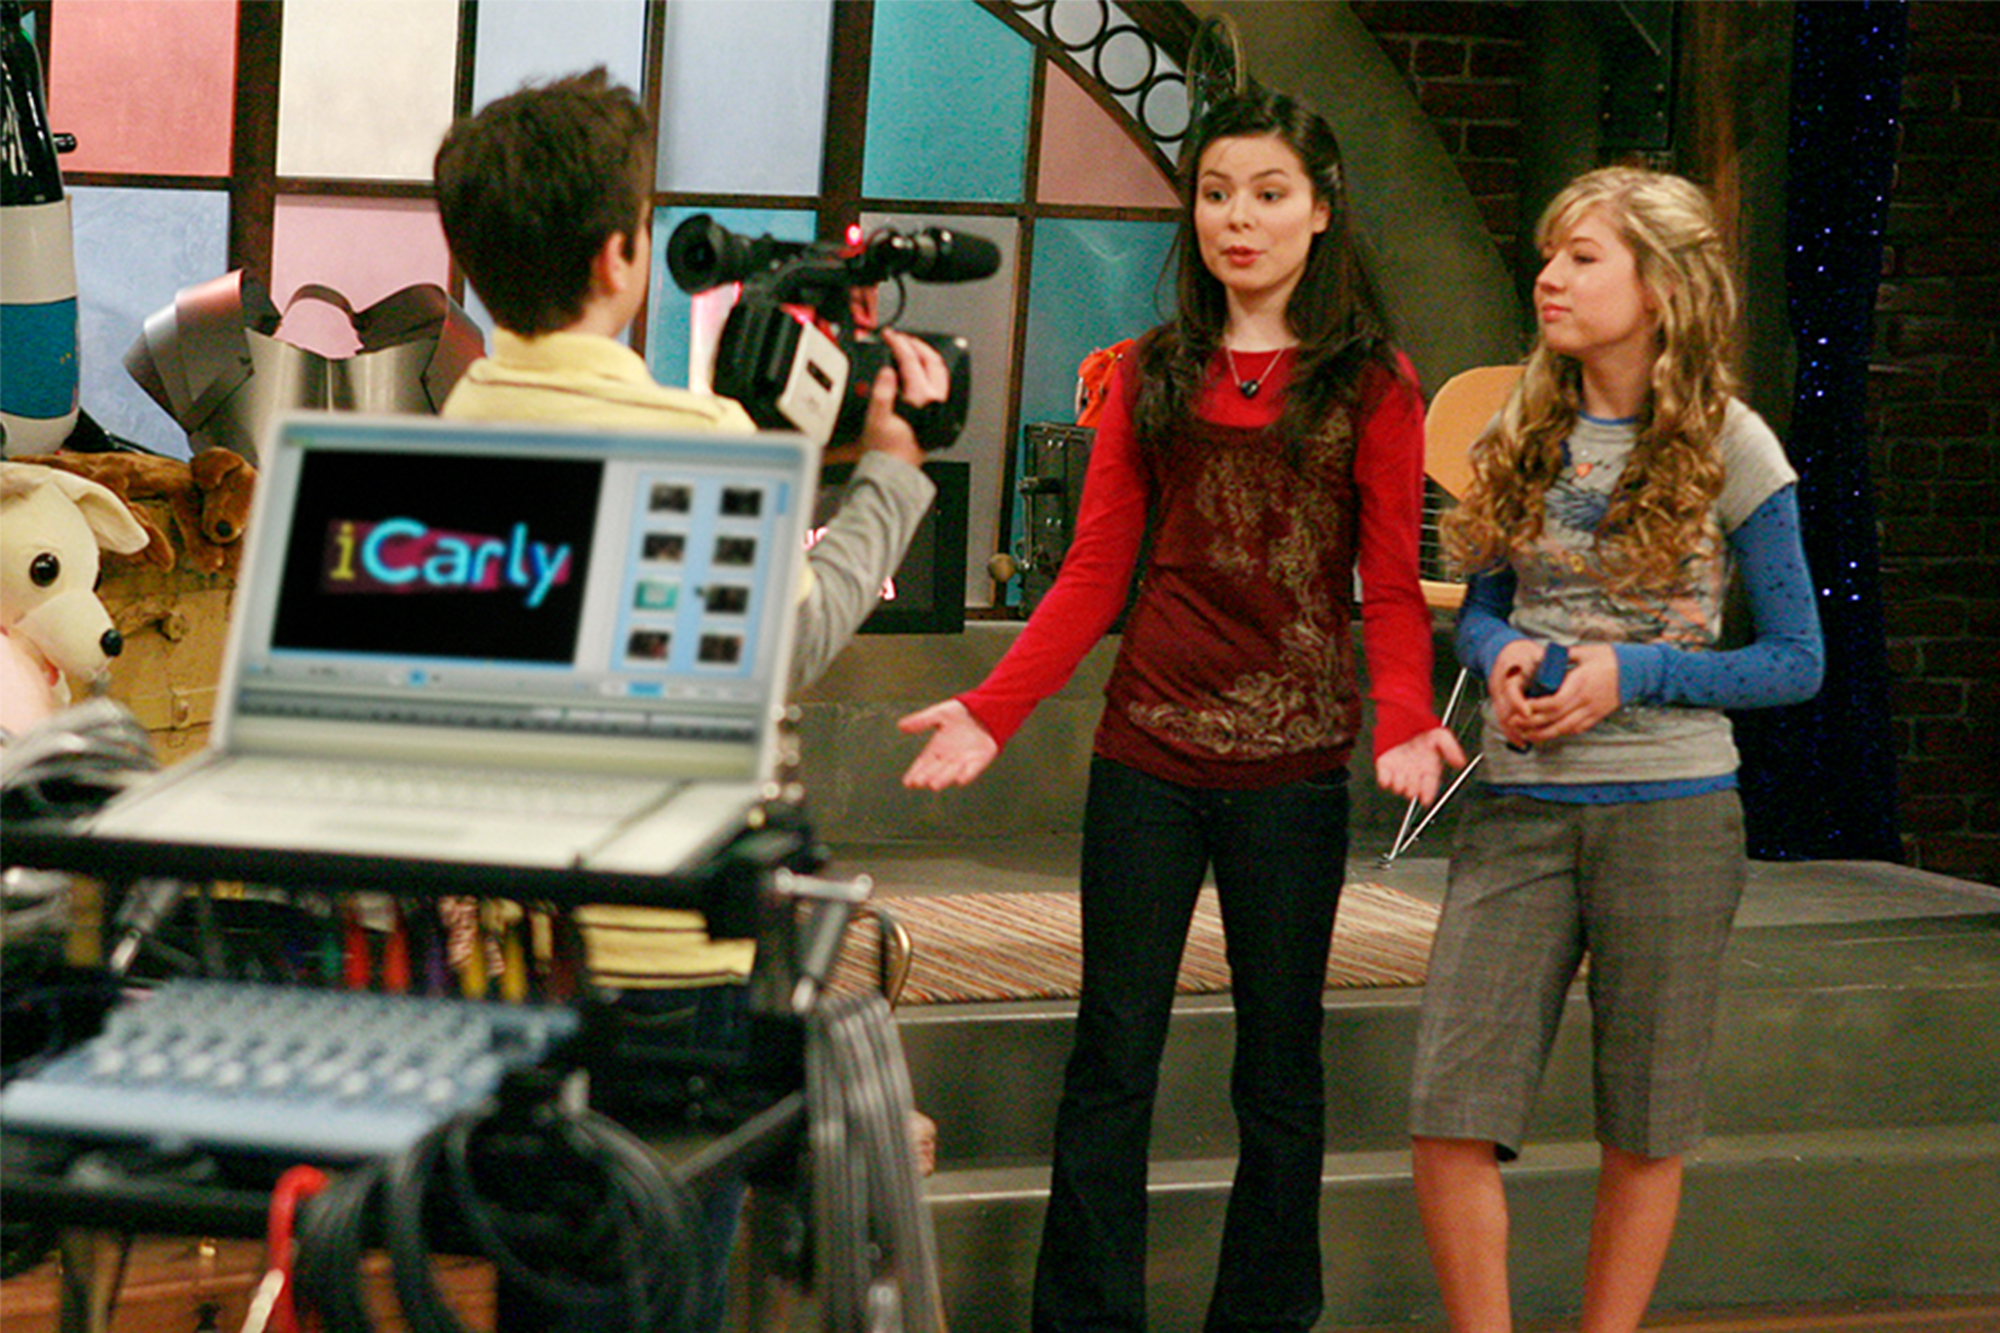 'iCarly' streaming revival will feature original stars